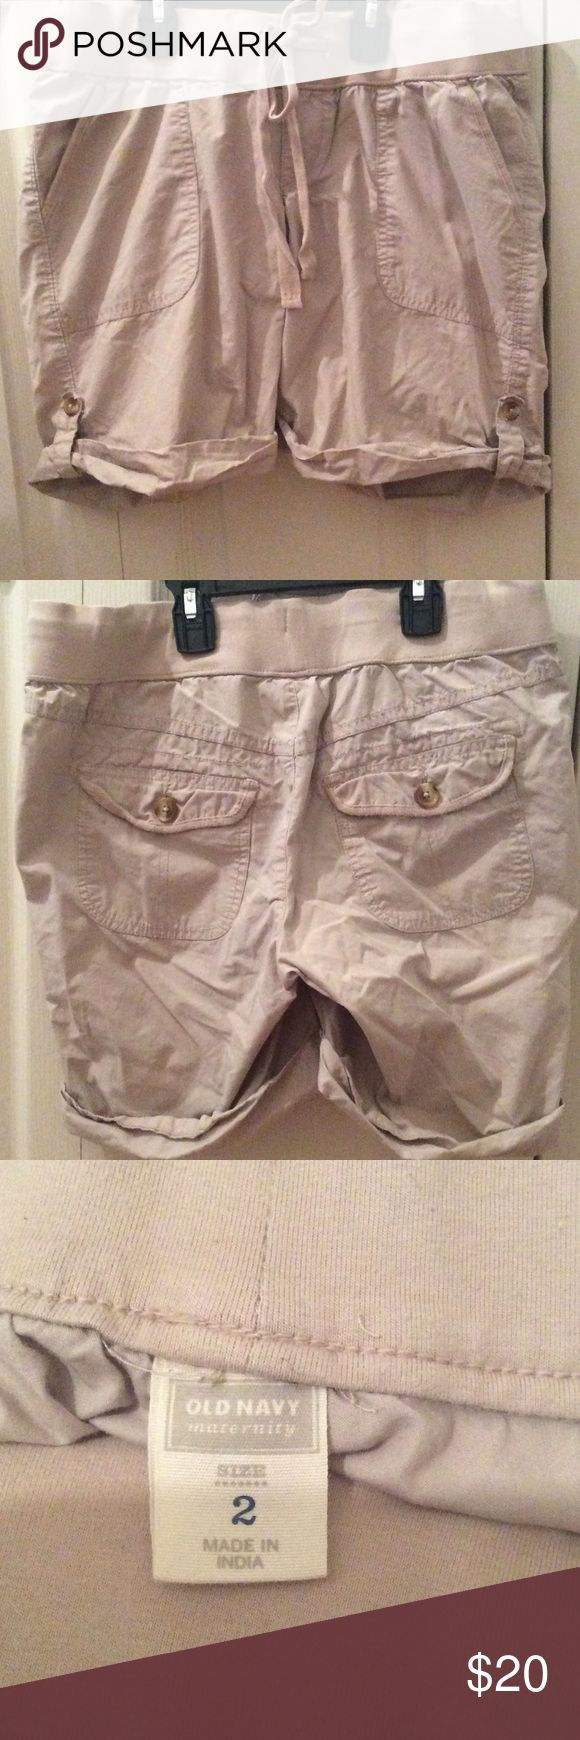 Old Navy Maternity Shorts Khaki Old Navy shorts. Only wore a couple times. Old Navy Shorts